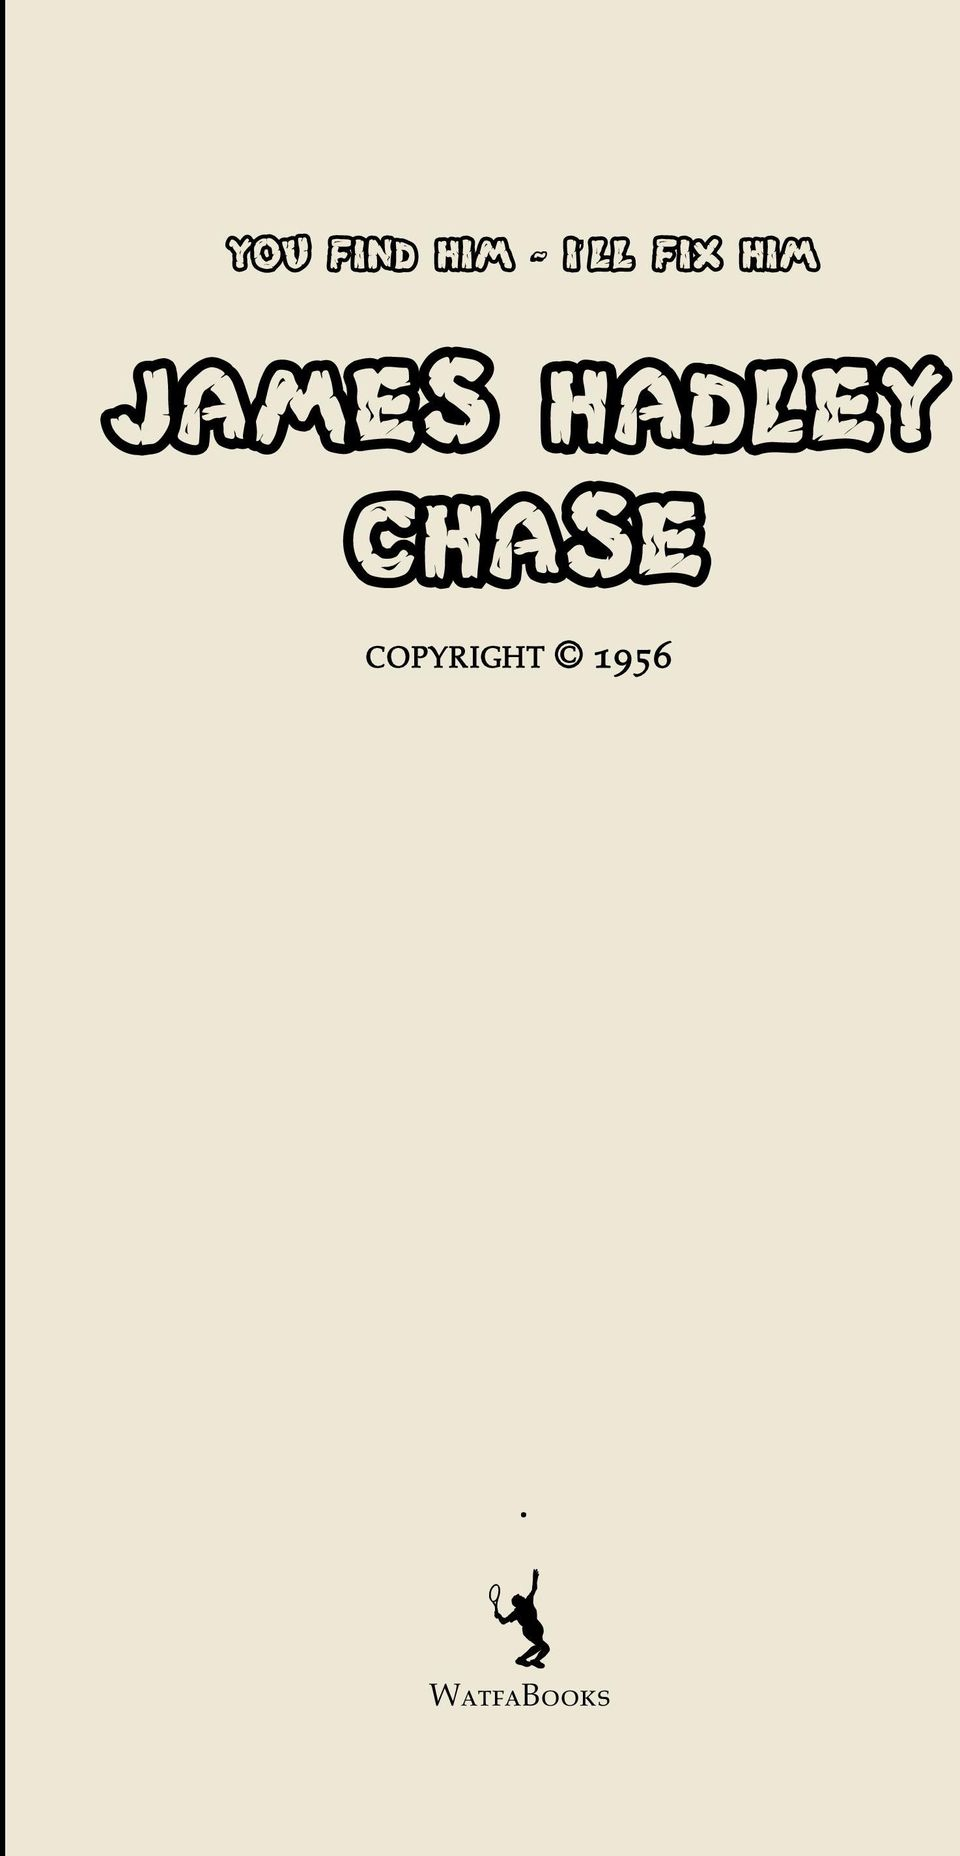 HADLEY CHASE